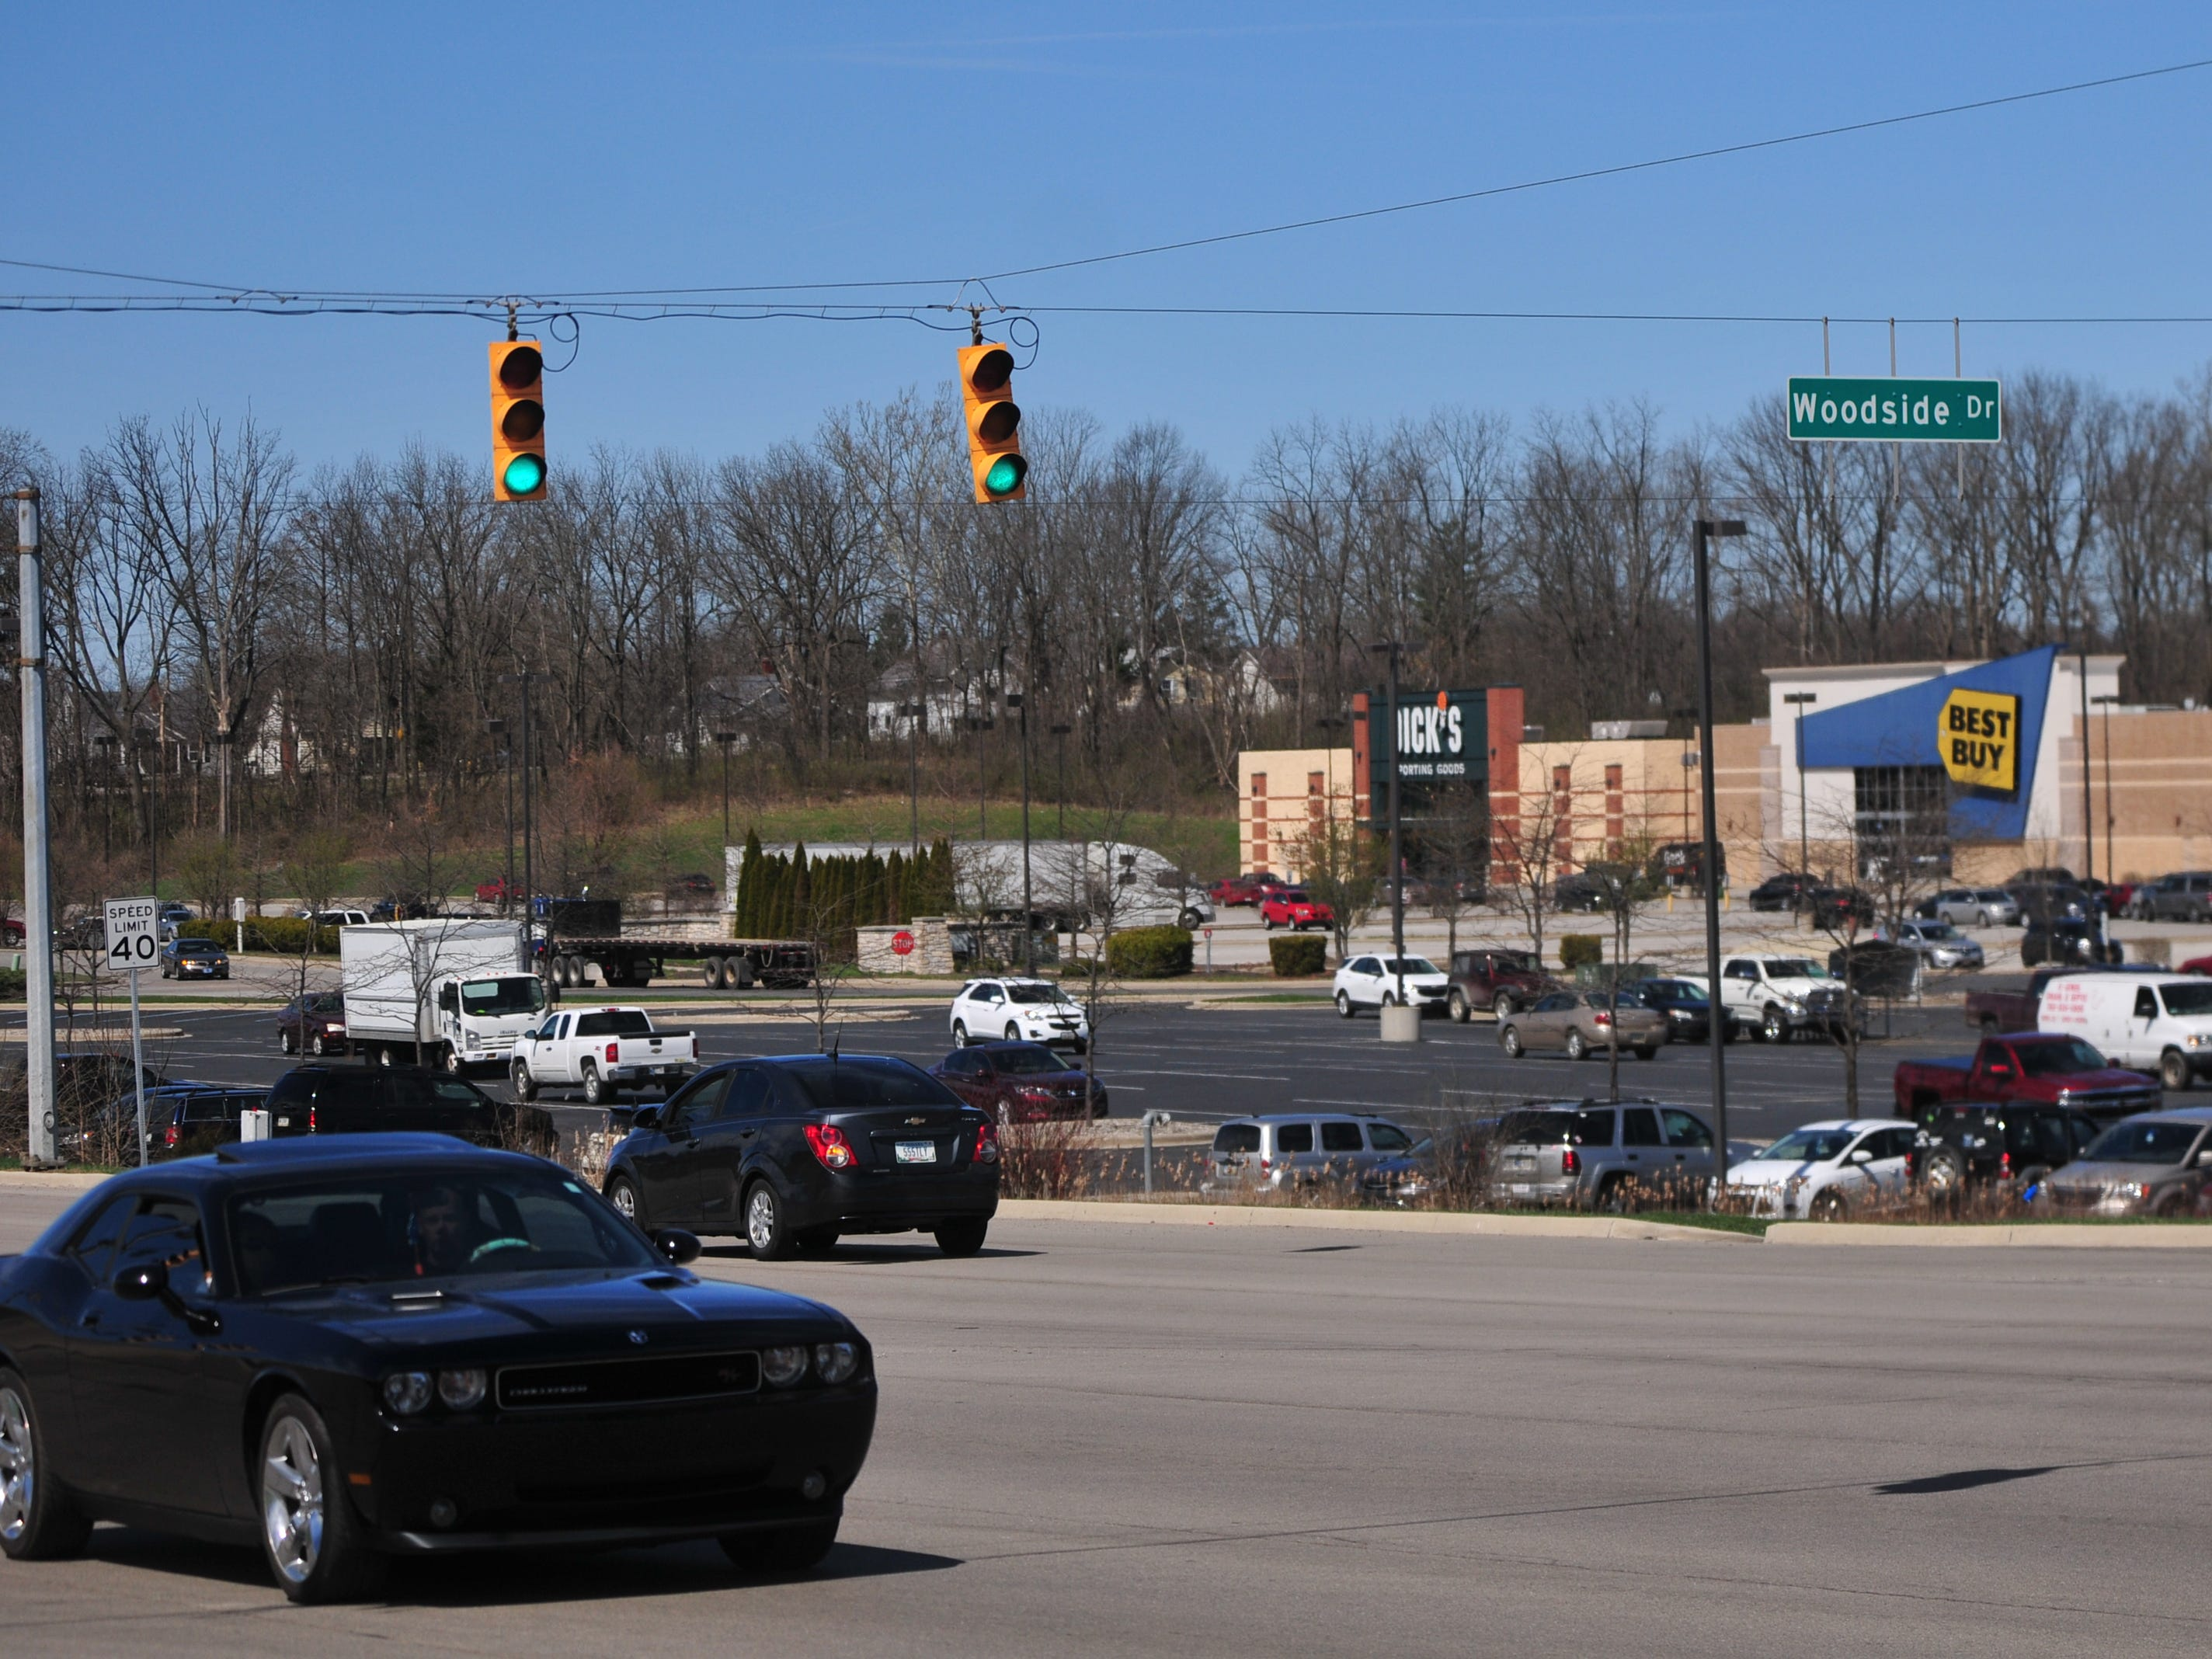 Richmond Police Department reported 19 accidents during 2018 at the intersection of National Road East and Woodside Drive.